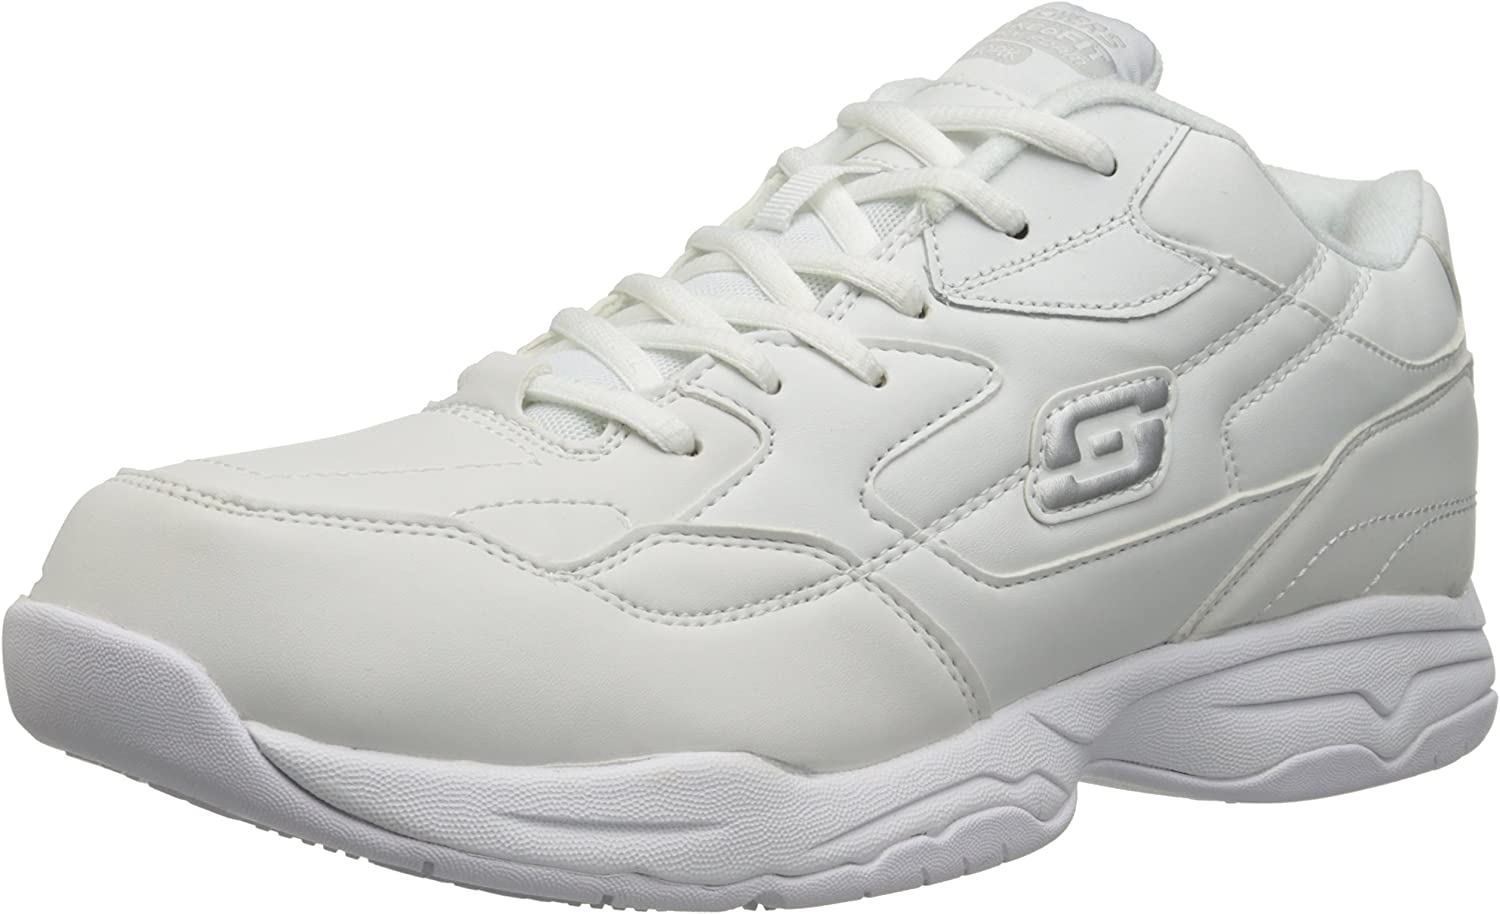 Skechers For Work 77032 Felton Resistant Relaxed-fit Work shoes